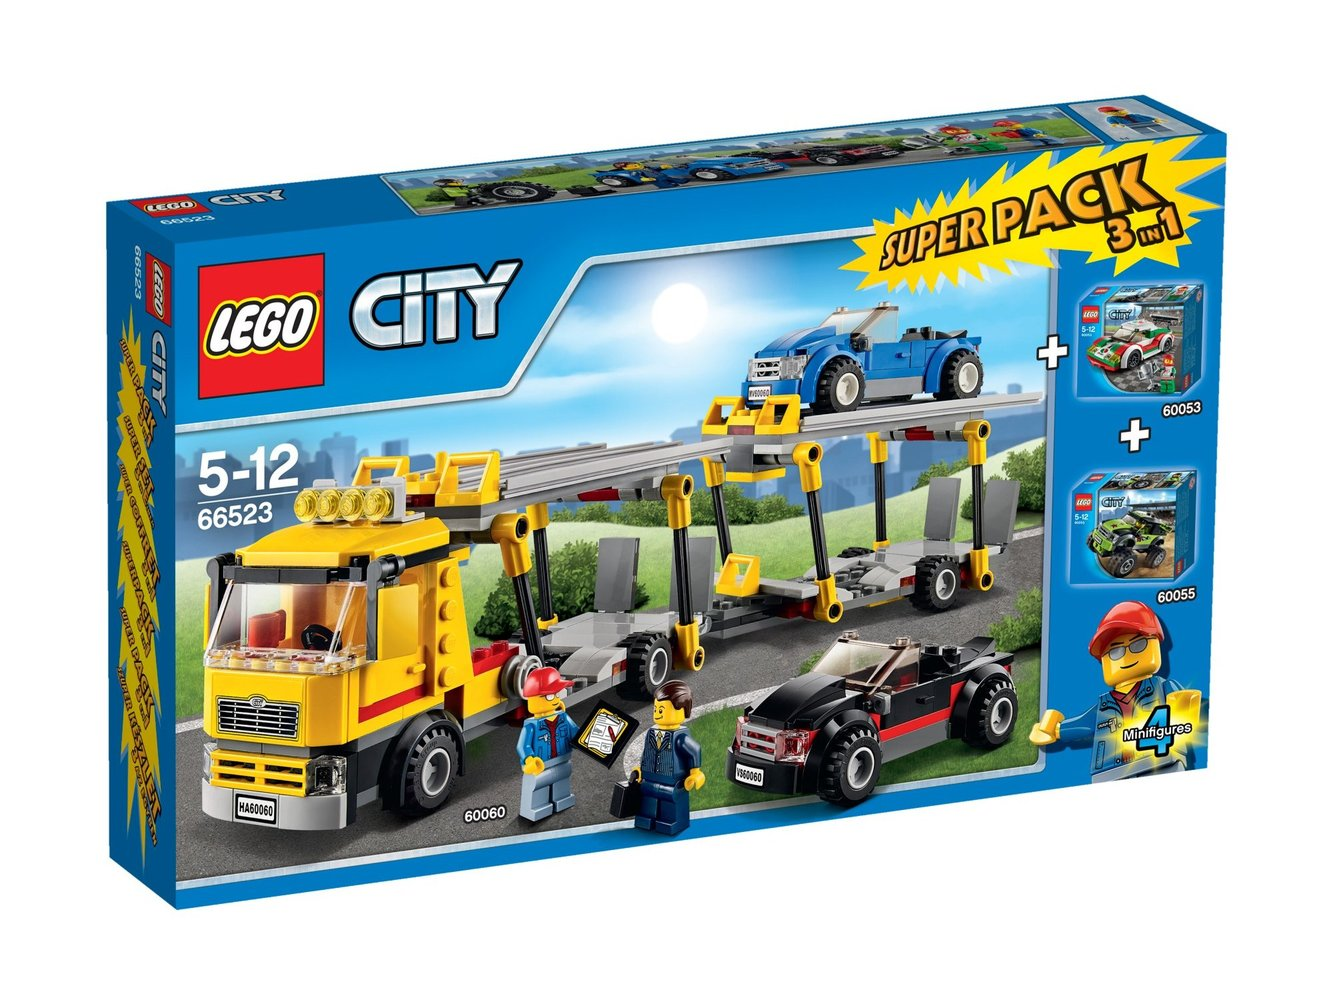 City Super Pack 3-in-1